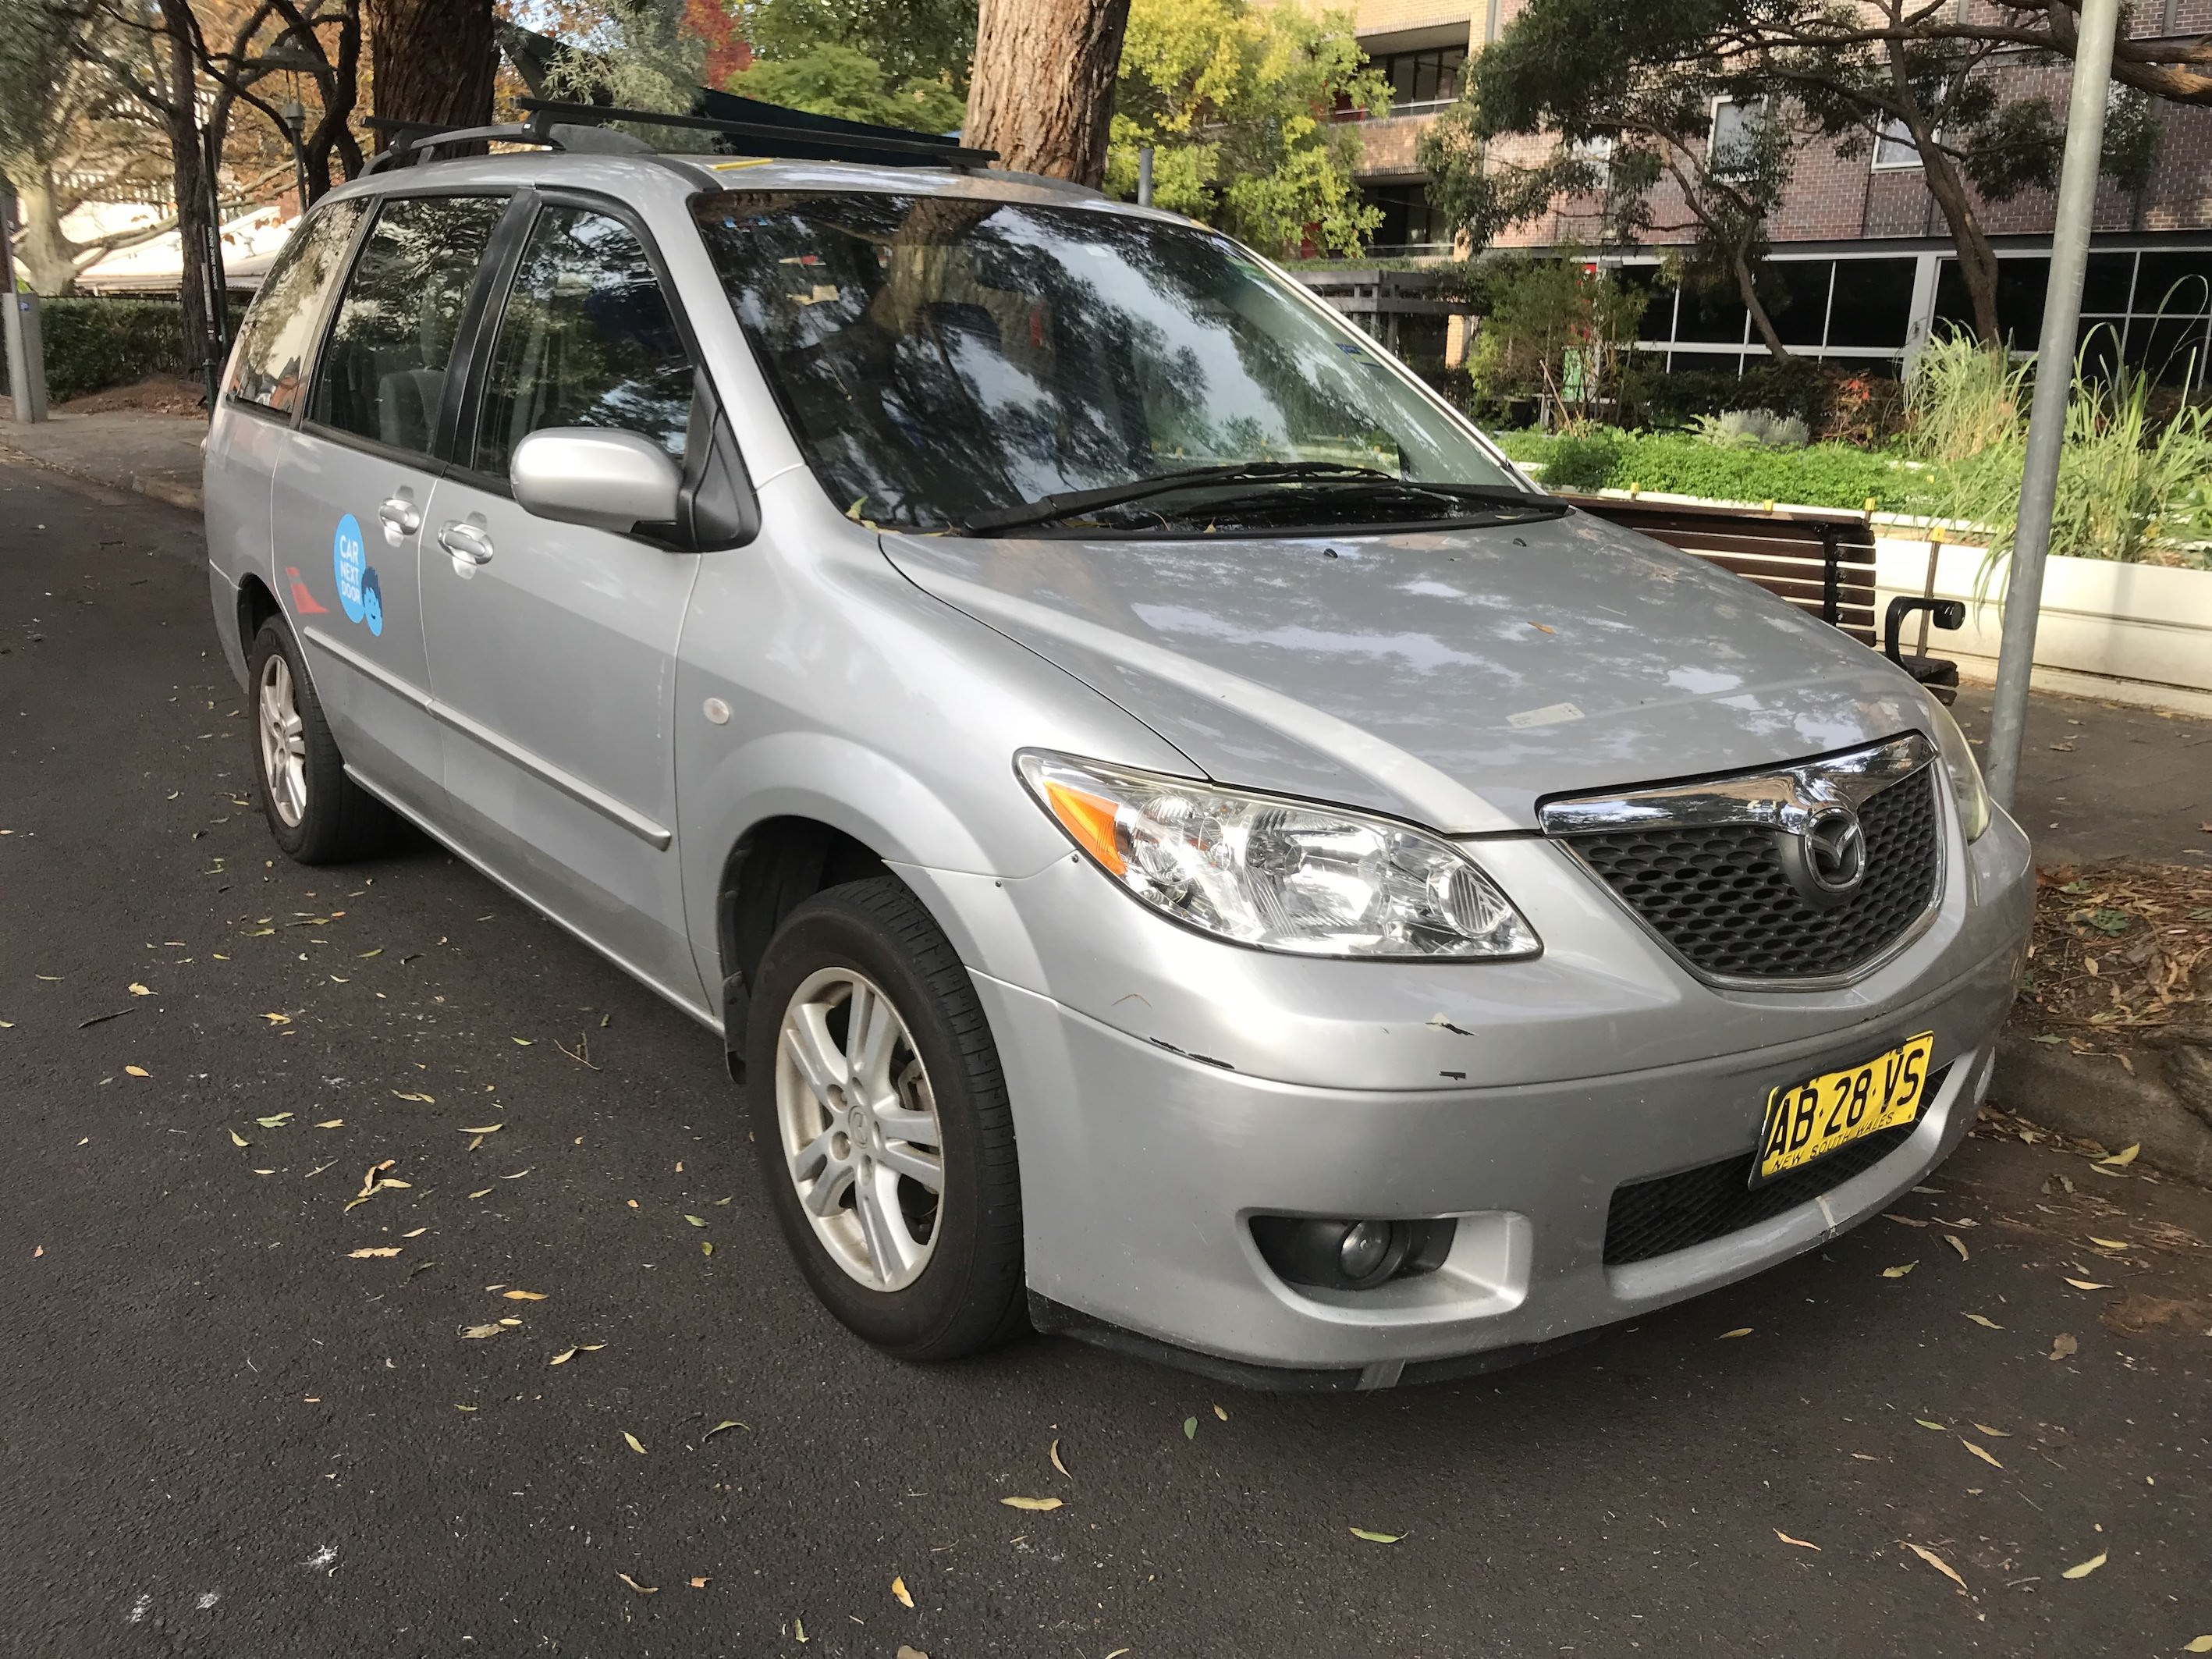 Picture of Yatanar's 2004 Mazda MPV